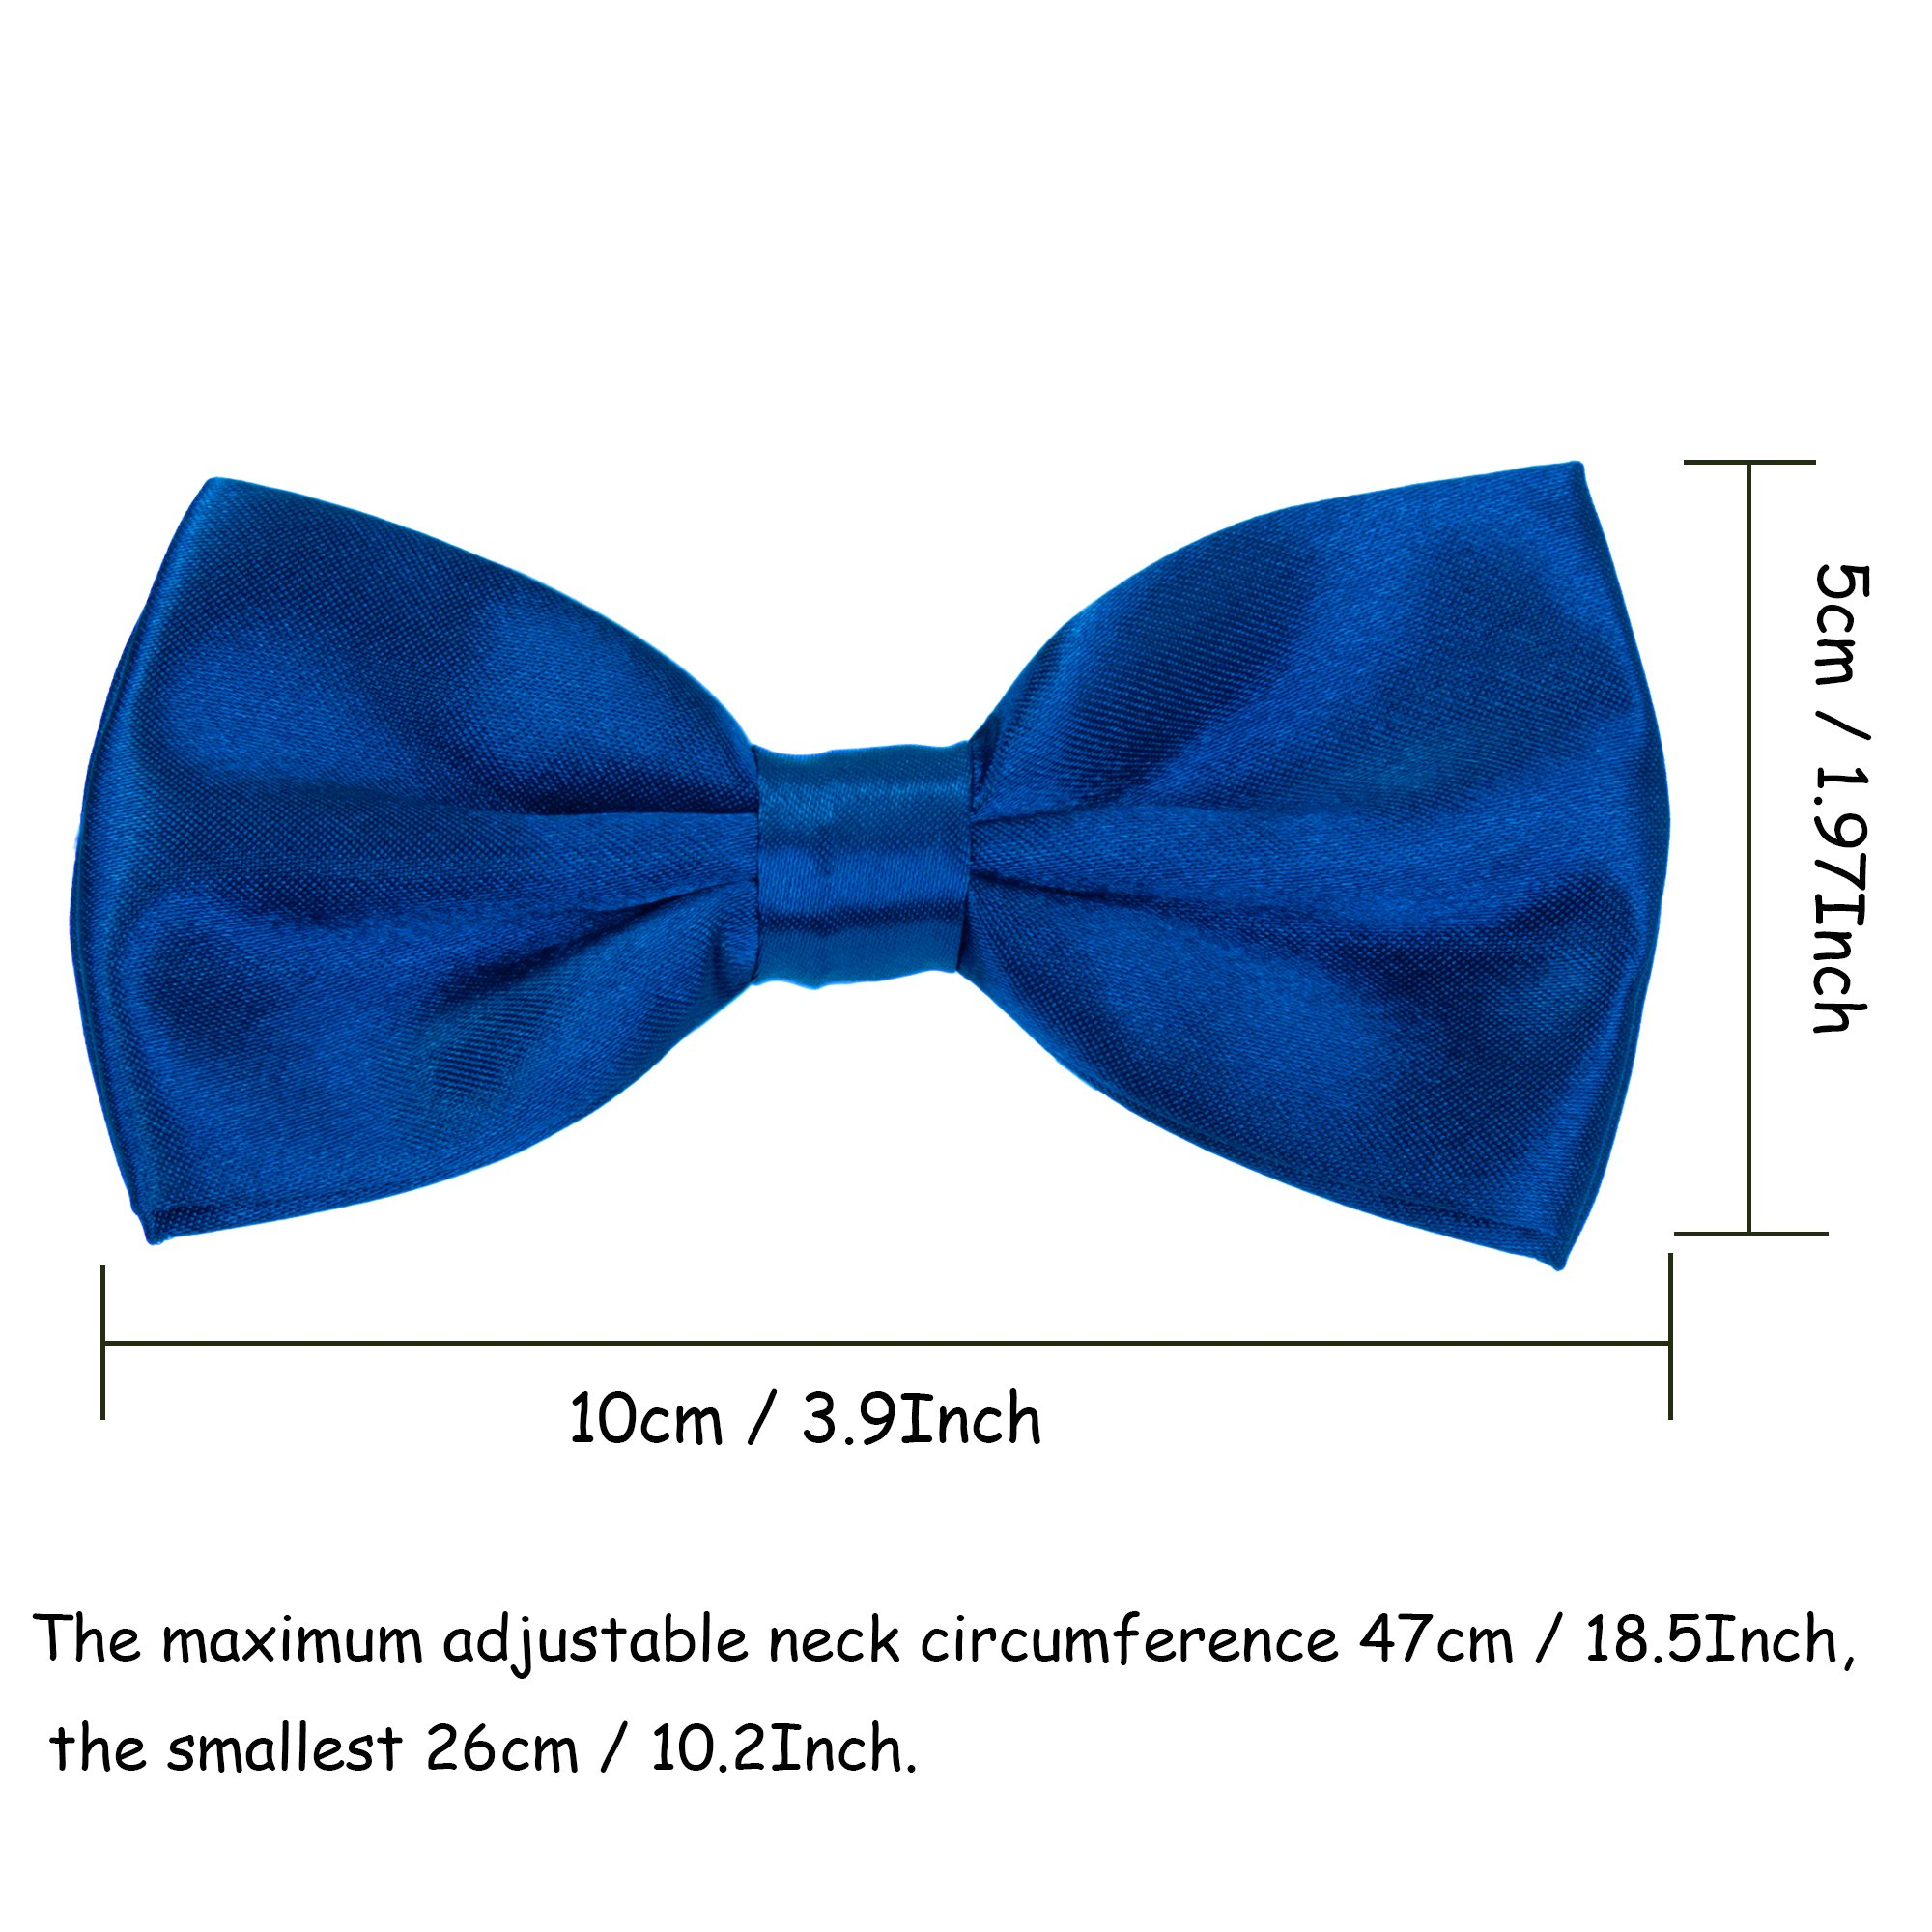 Boys Children Formal Bow Ties - 6 Pack of Solid Color Adjustable Pre Tied Bowties for Wedding Party (Royal Blue) by Kajeer (Image #4)